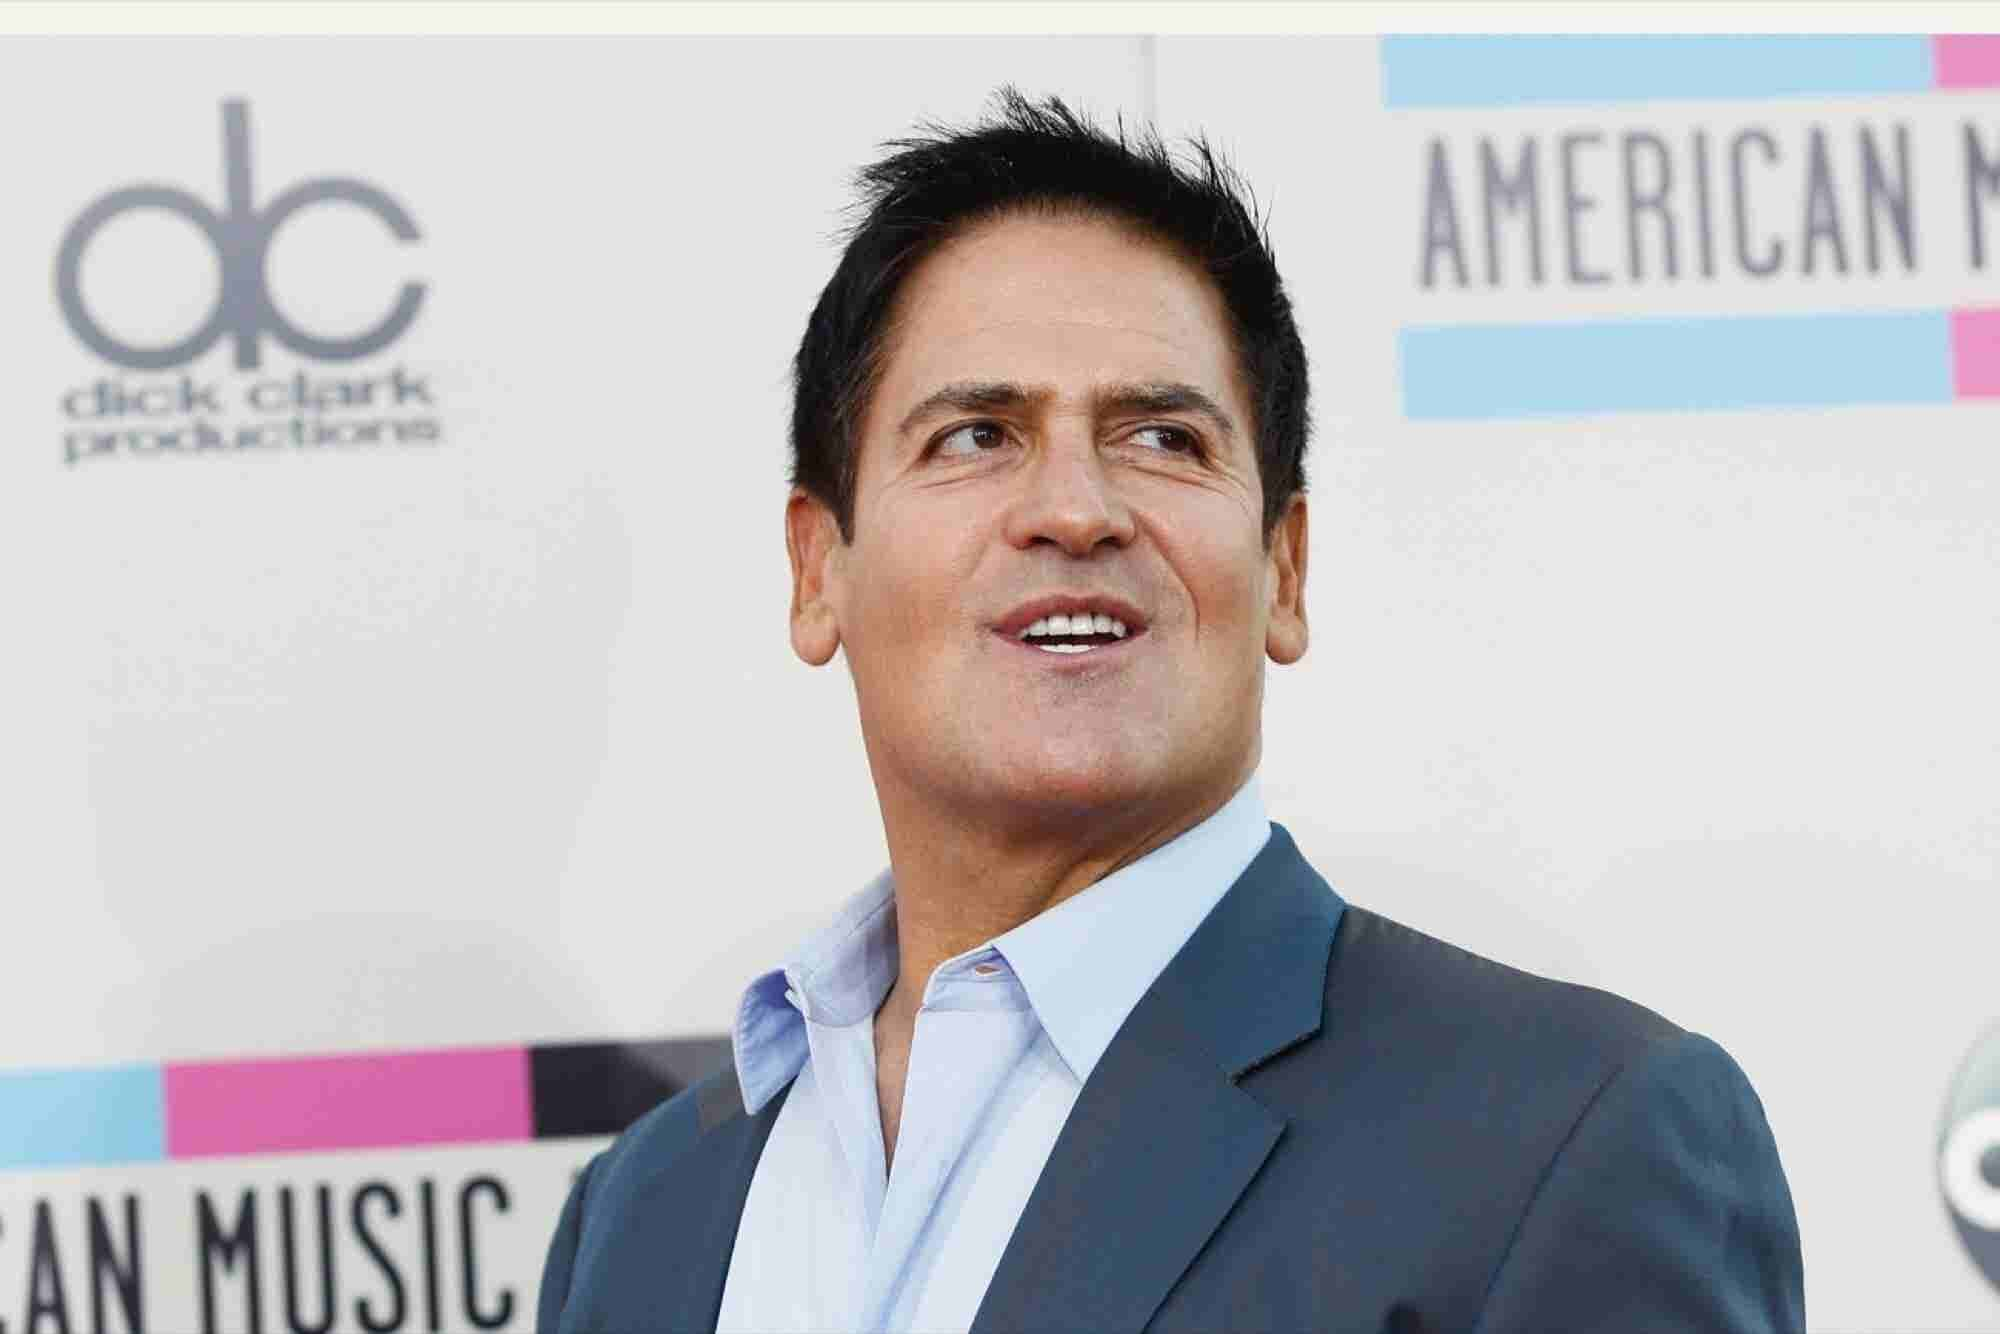 Meet the Latest Startup to Catch Mark Cuban's Eye